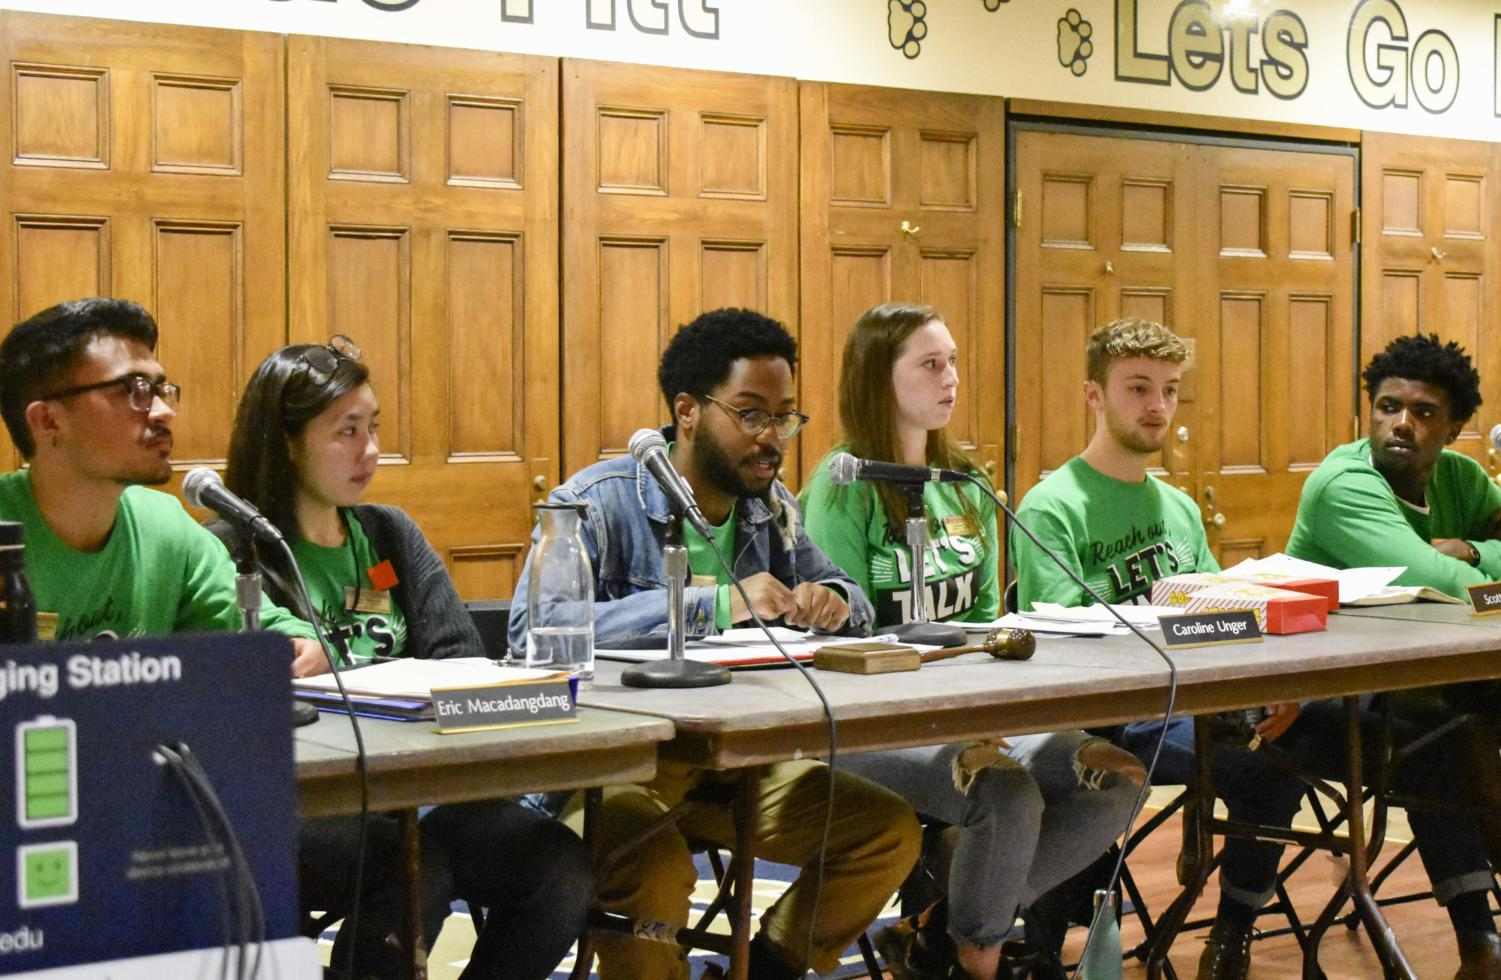 SGB provided updates on ongoing projects, including new club naming guidelines and installing free menstrual product dispensers in various bathrooms around campus, at Tuesday's public meeting.